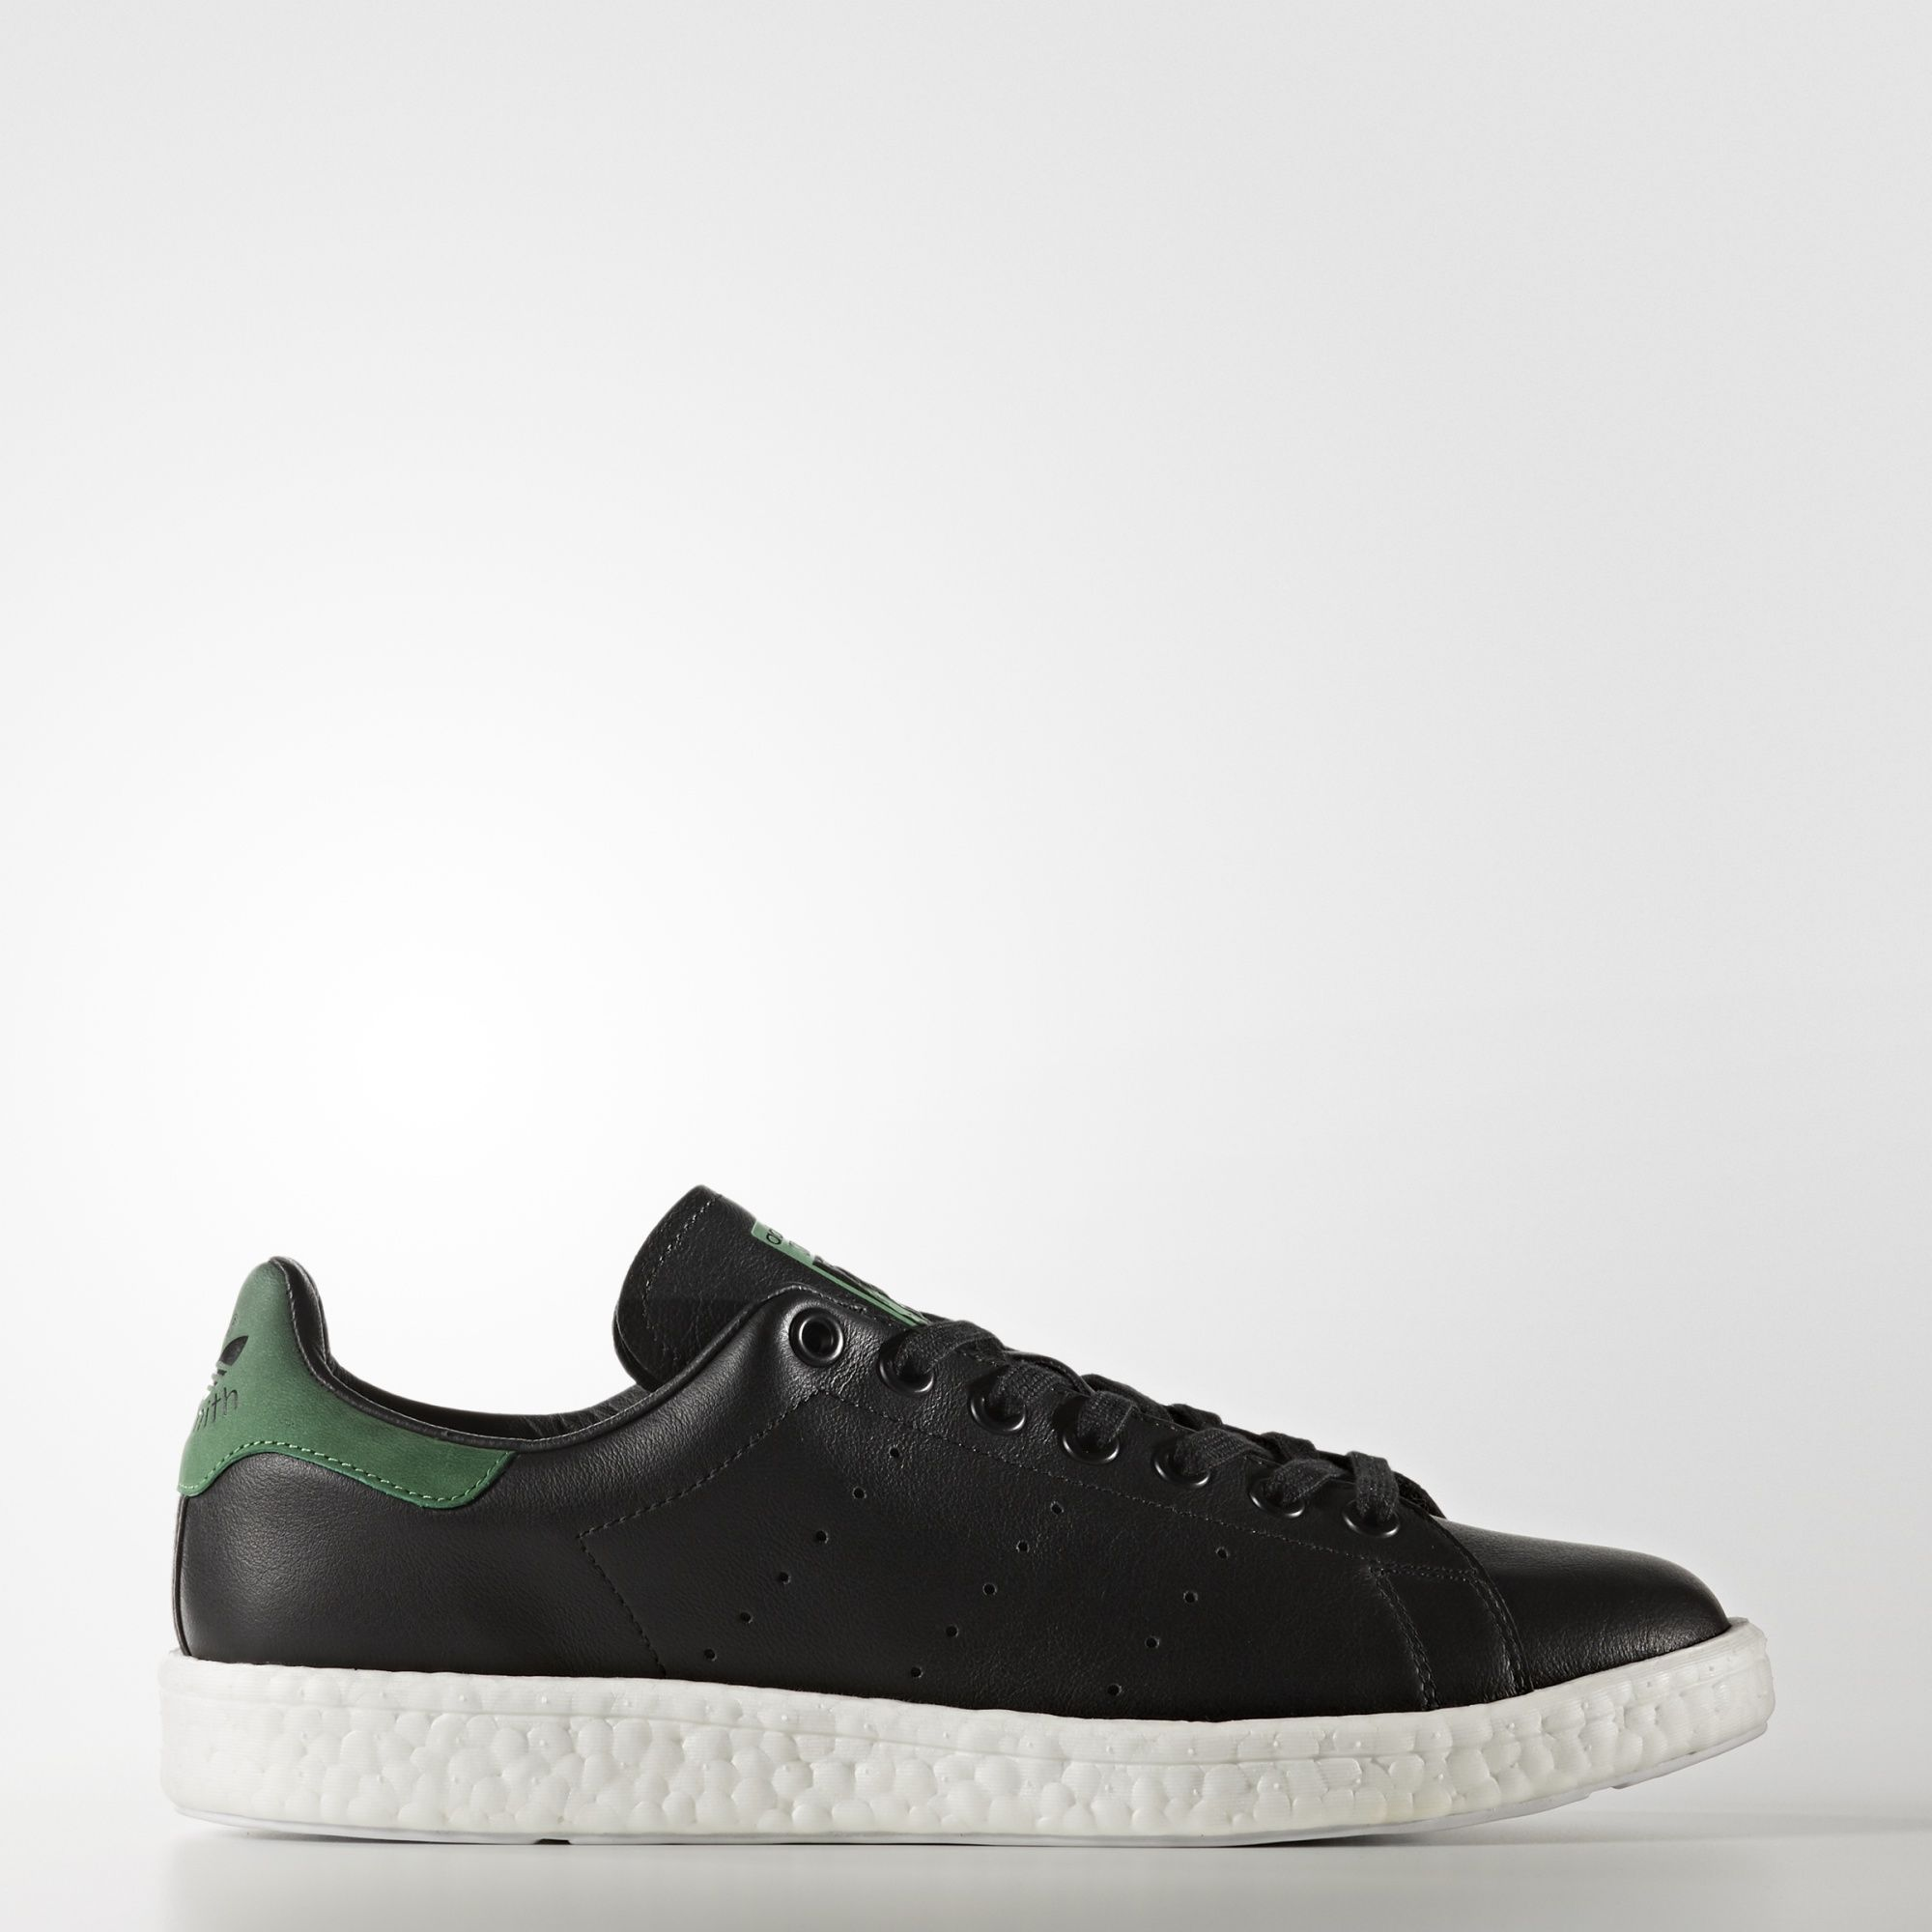 adidas stan smith boost shoes men black